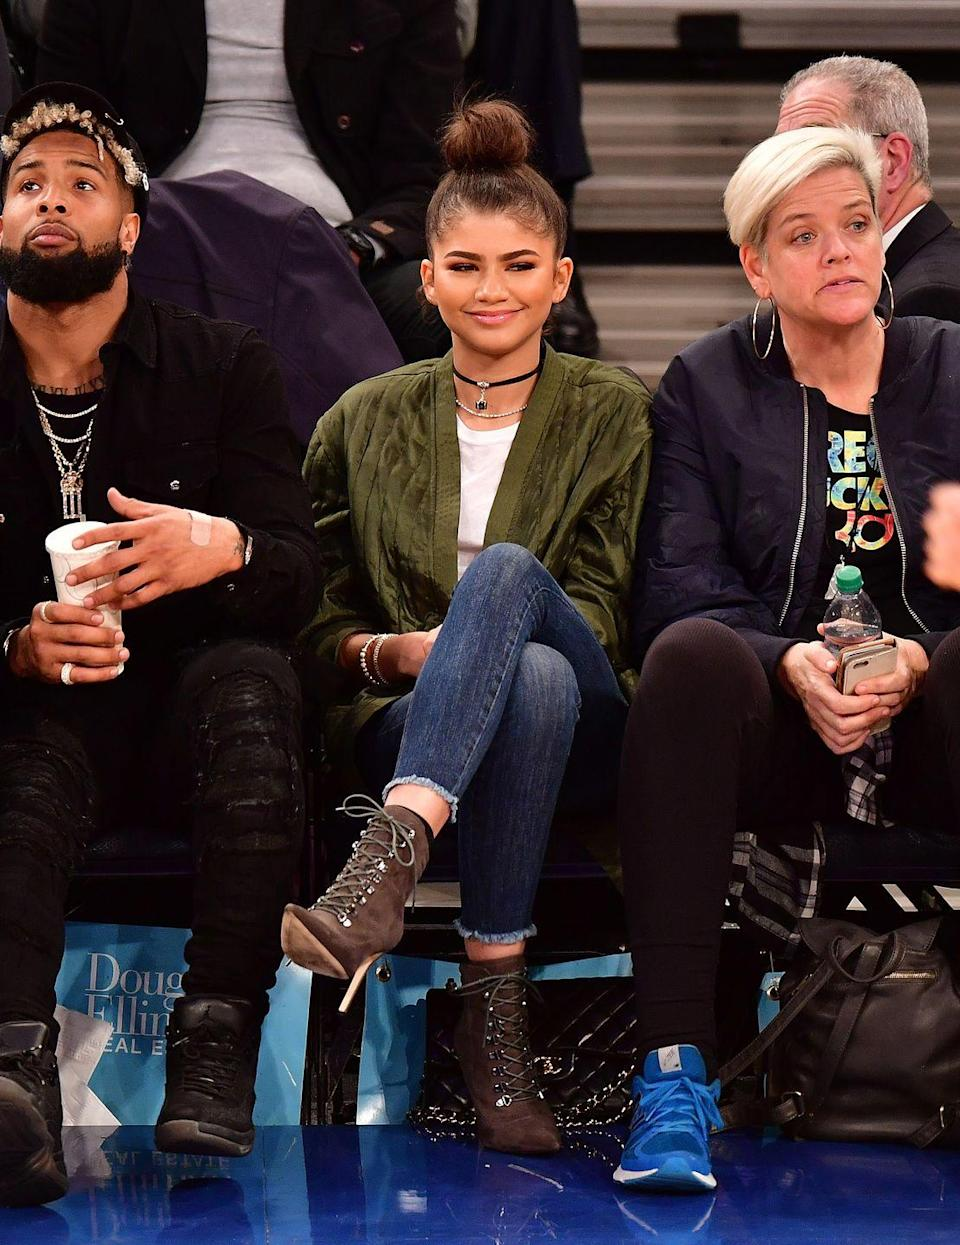 <p>A lace-up bootie really elongates the legs, making them seem miles long. Anything to get Zendaya's legs, am I right?!</p>